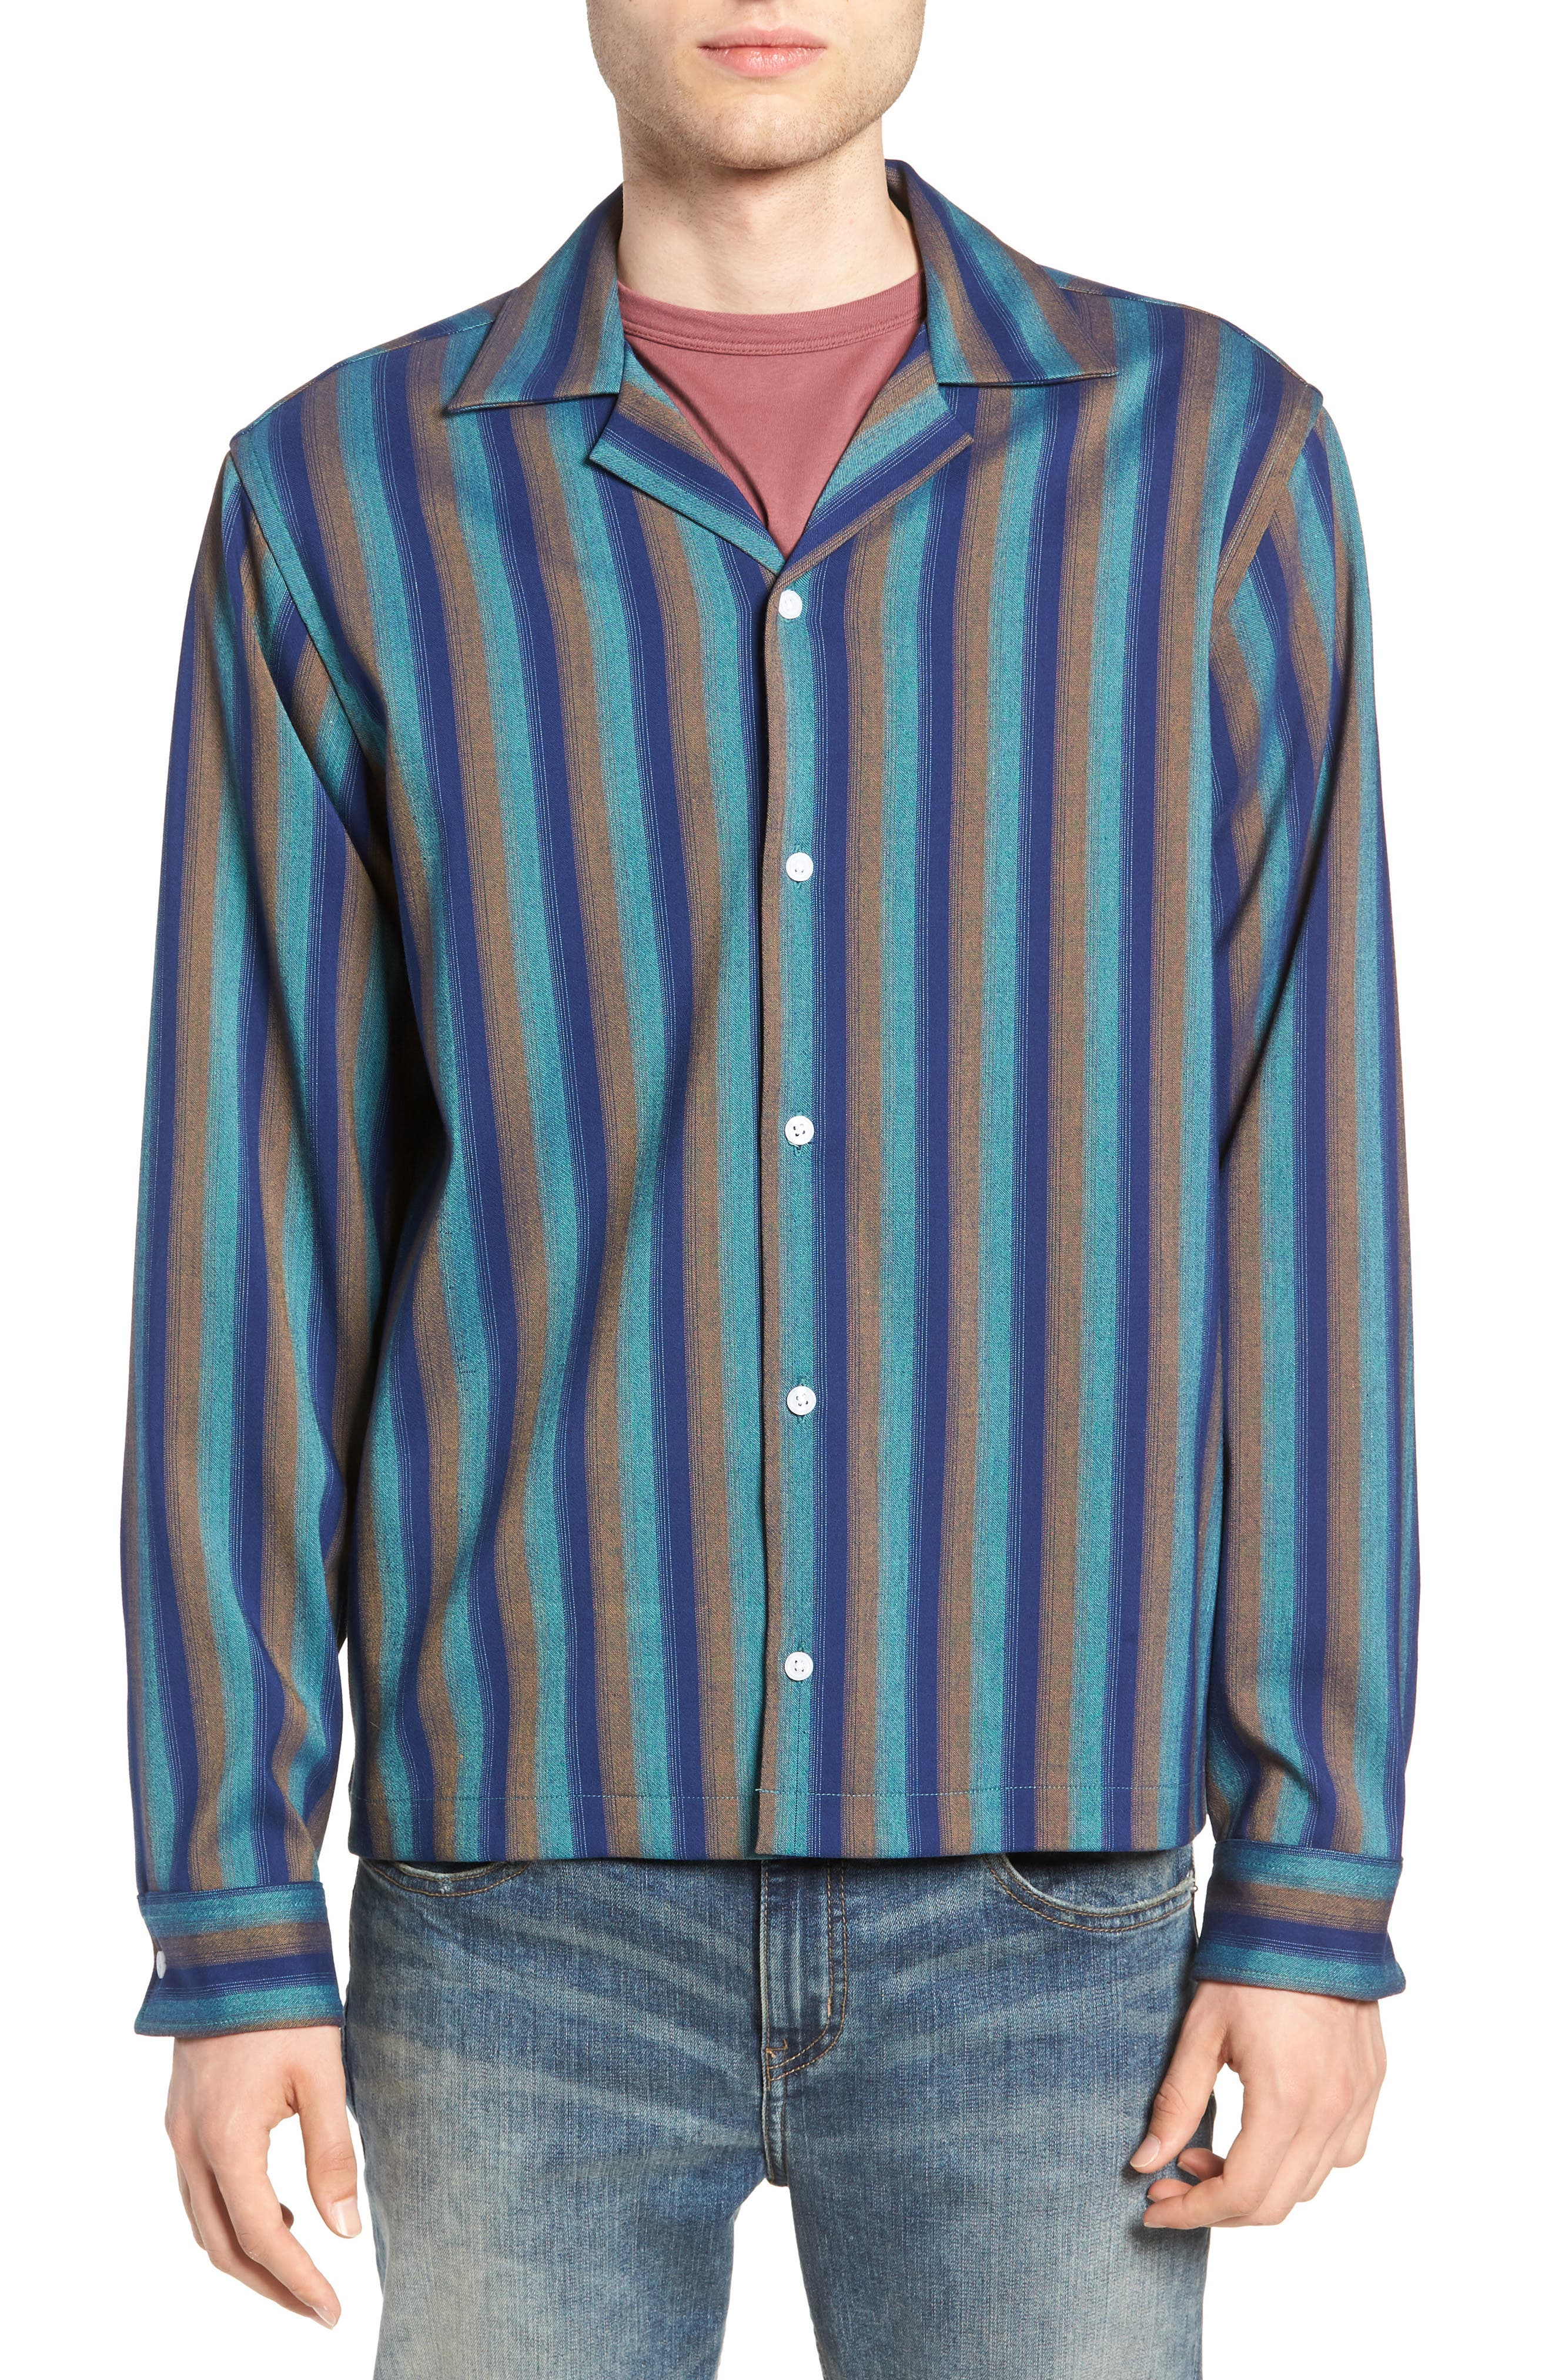 Marco Frequency Long Sleeve Woven Shirt,                             Alternate thumbnail 2, color,                             334